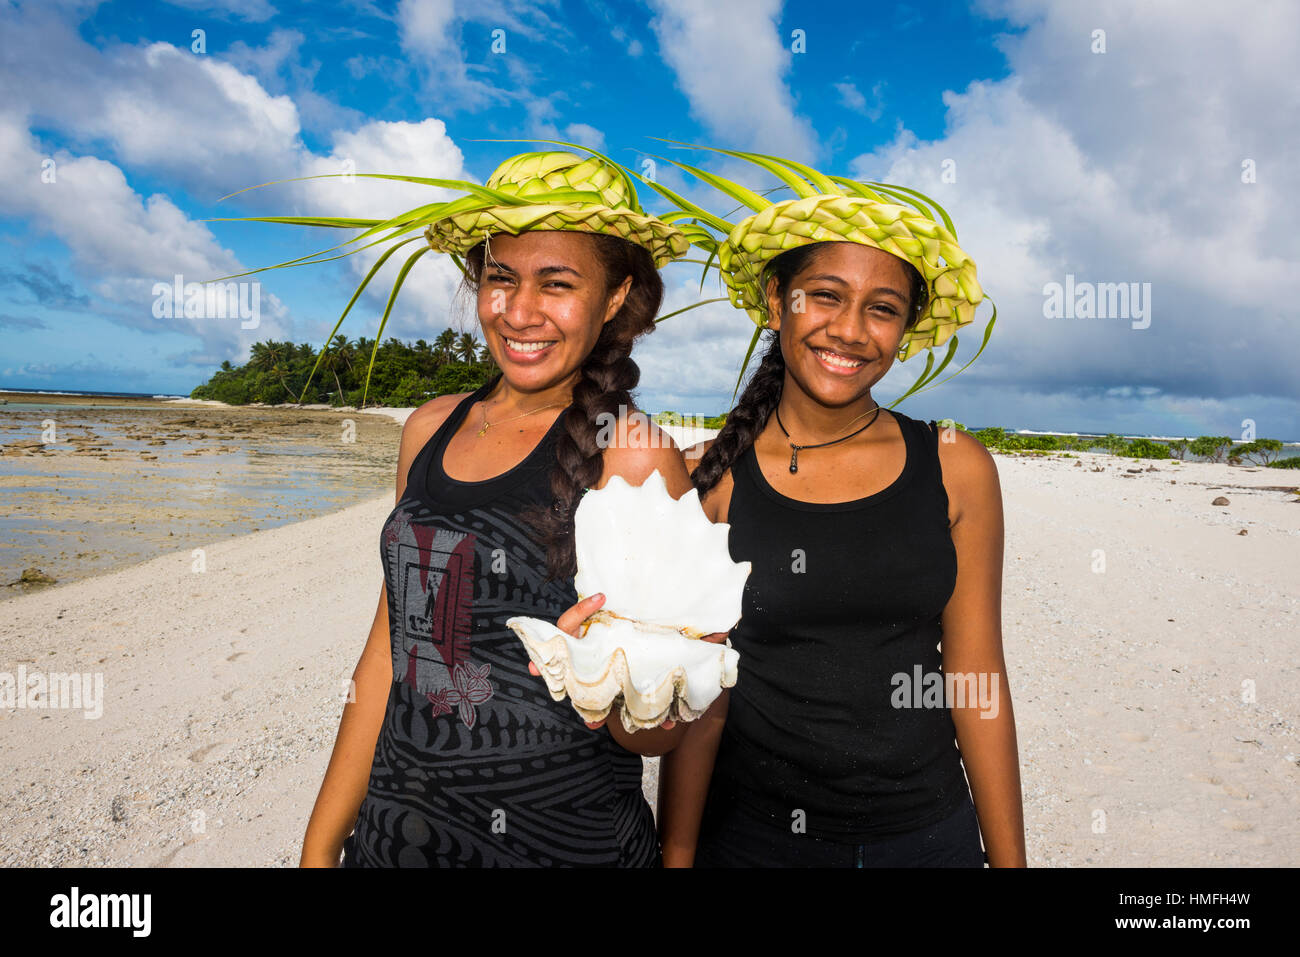 Local girls with palm leaves hats posing in the lagoon of Wallis, Wallis and Futuna, Pacific - Stock Image